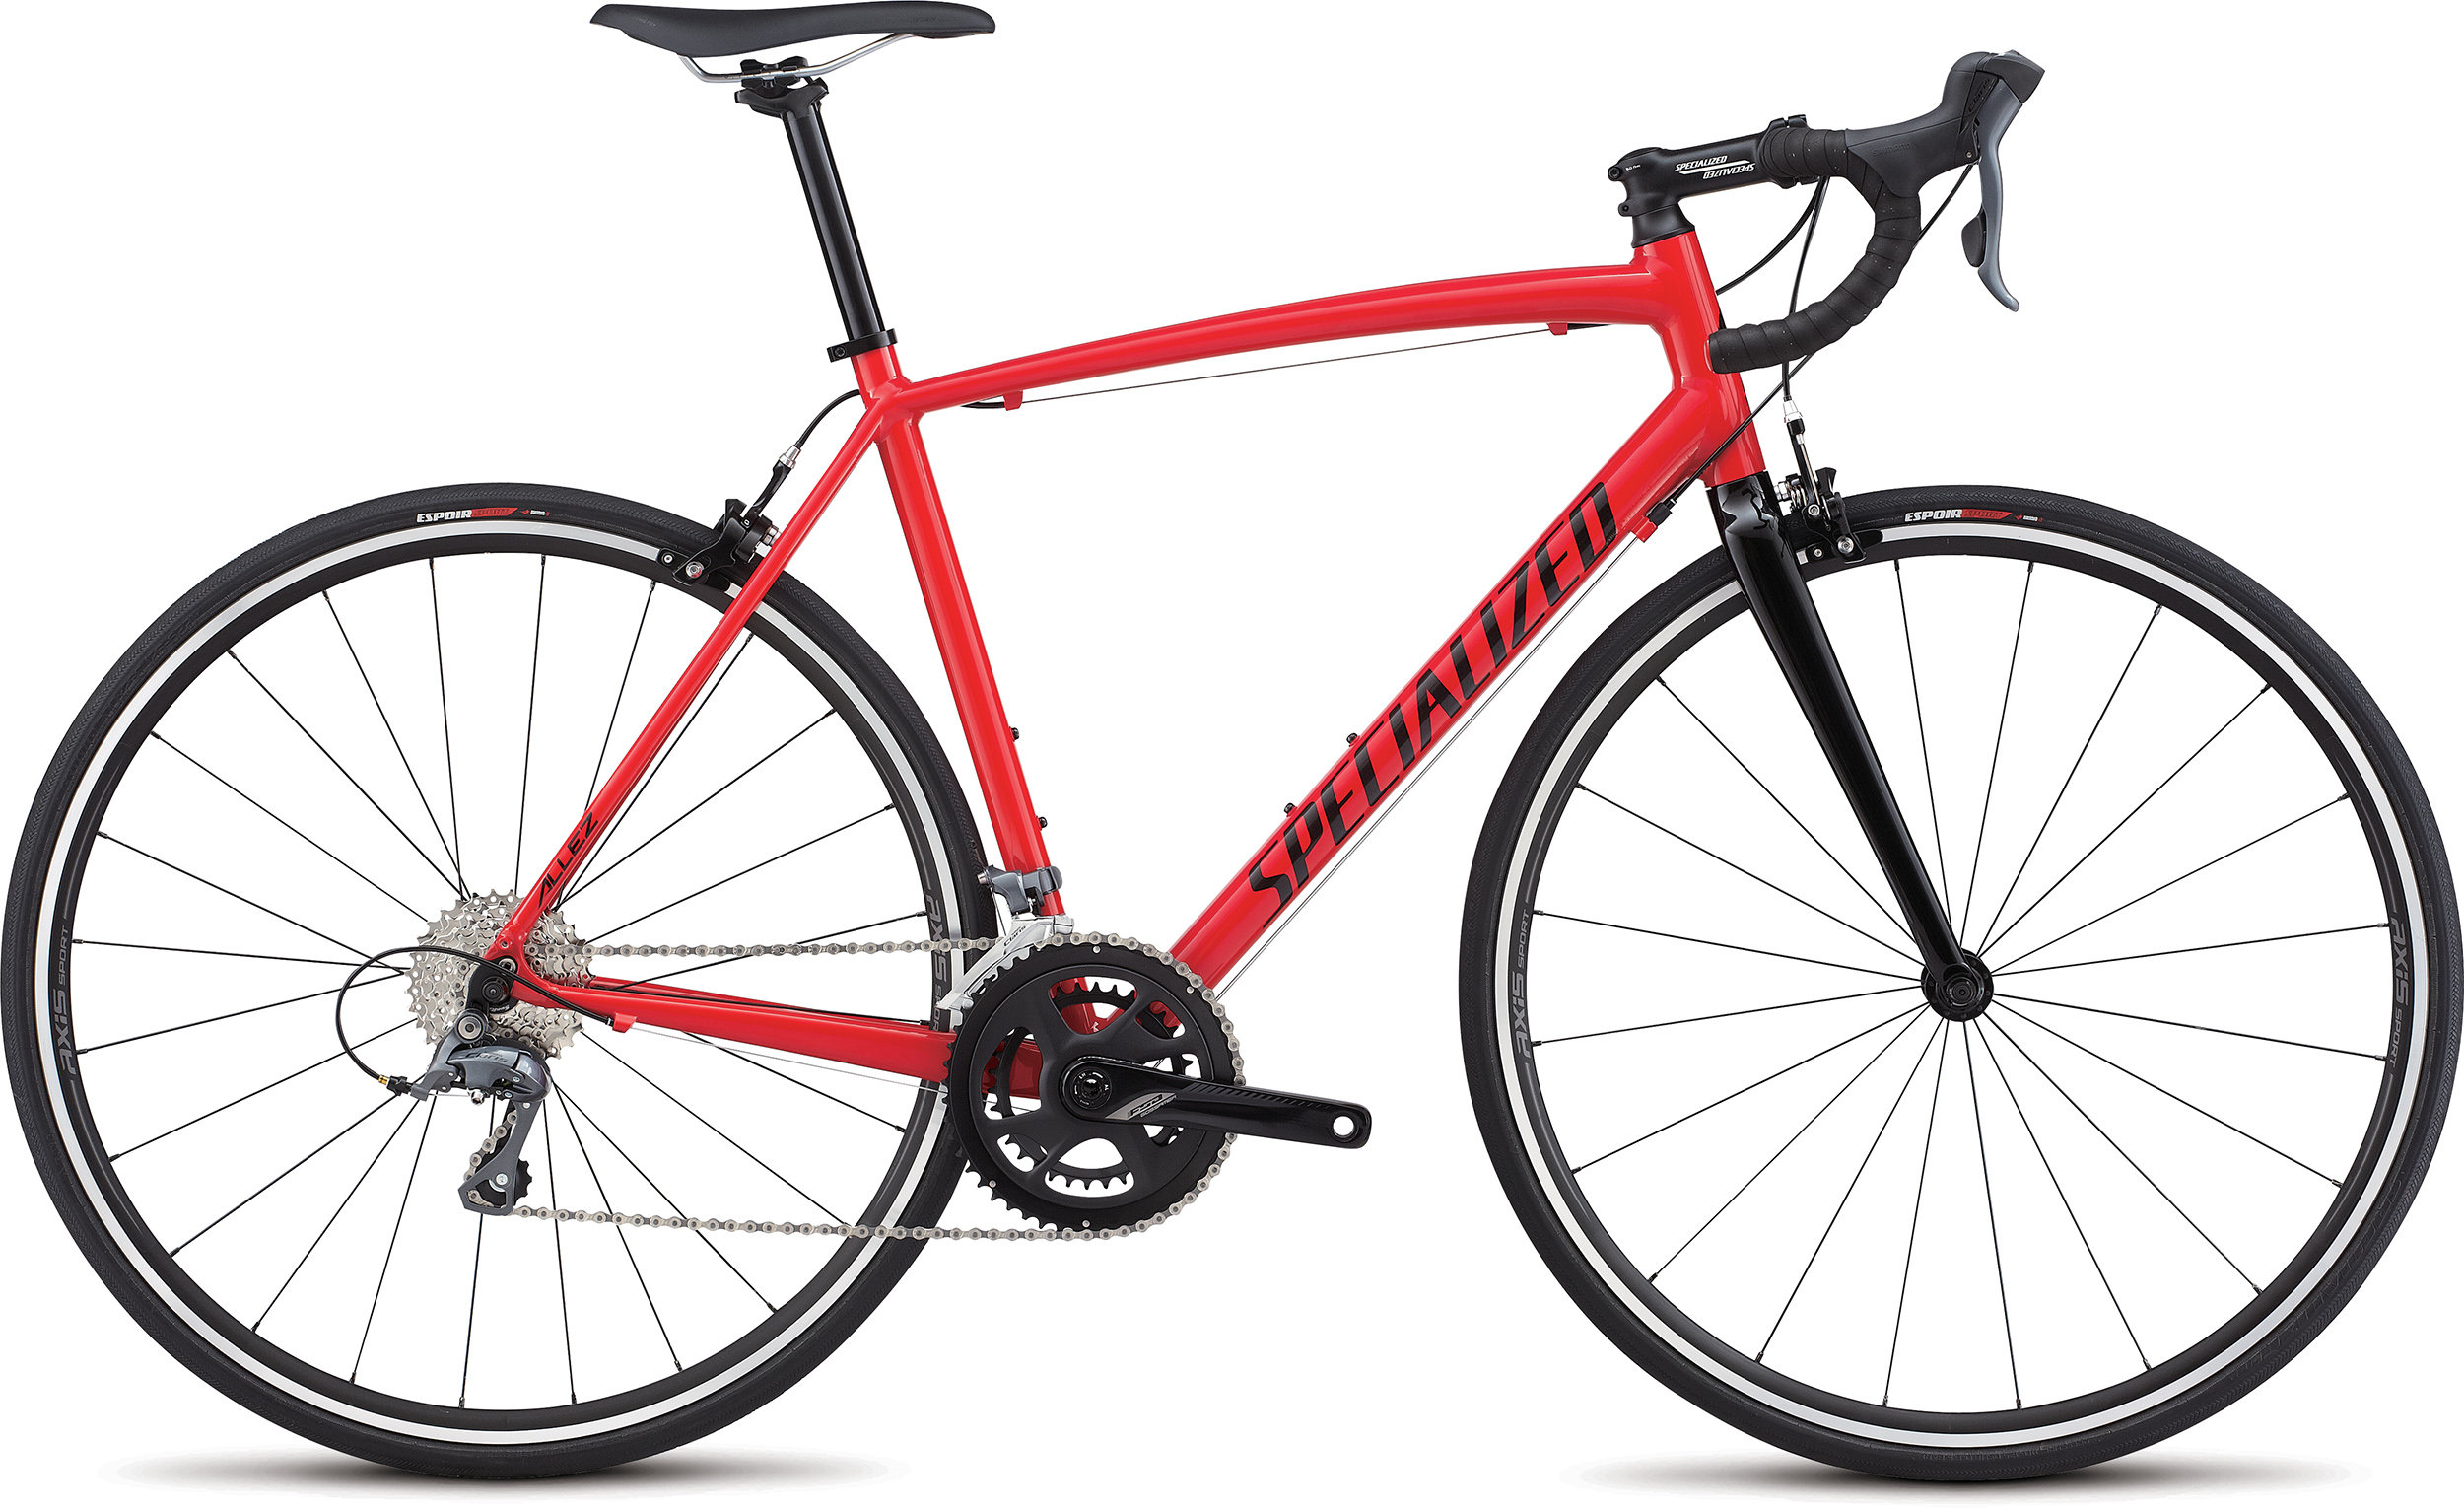 SPECIALIZED ALLEZ E5 FLORED/TARBLK 49 - Bikedreams & Dustbikes